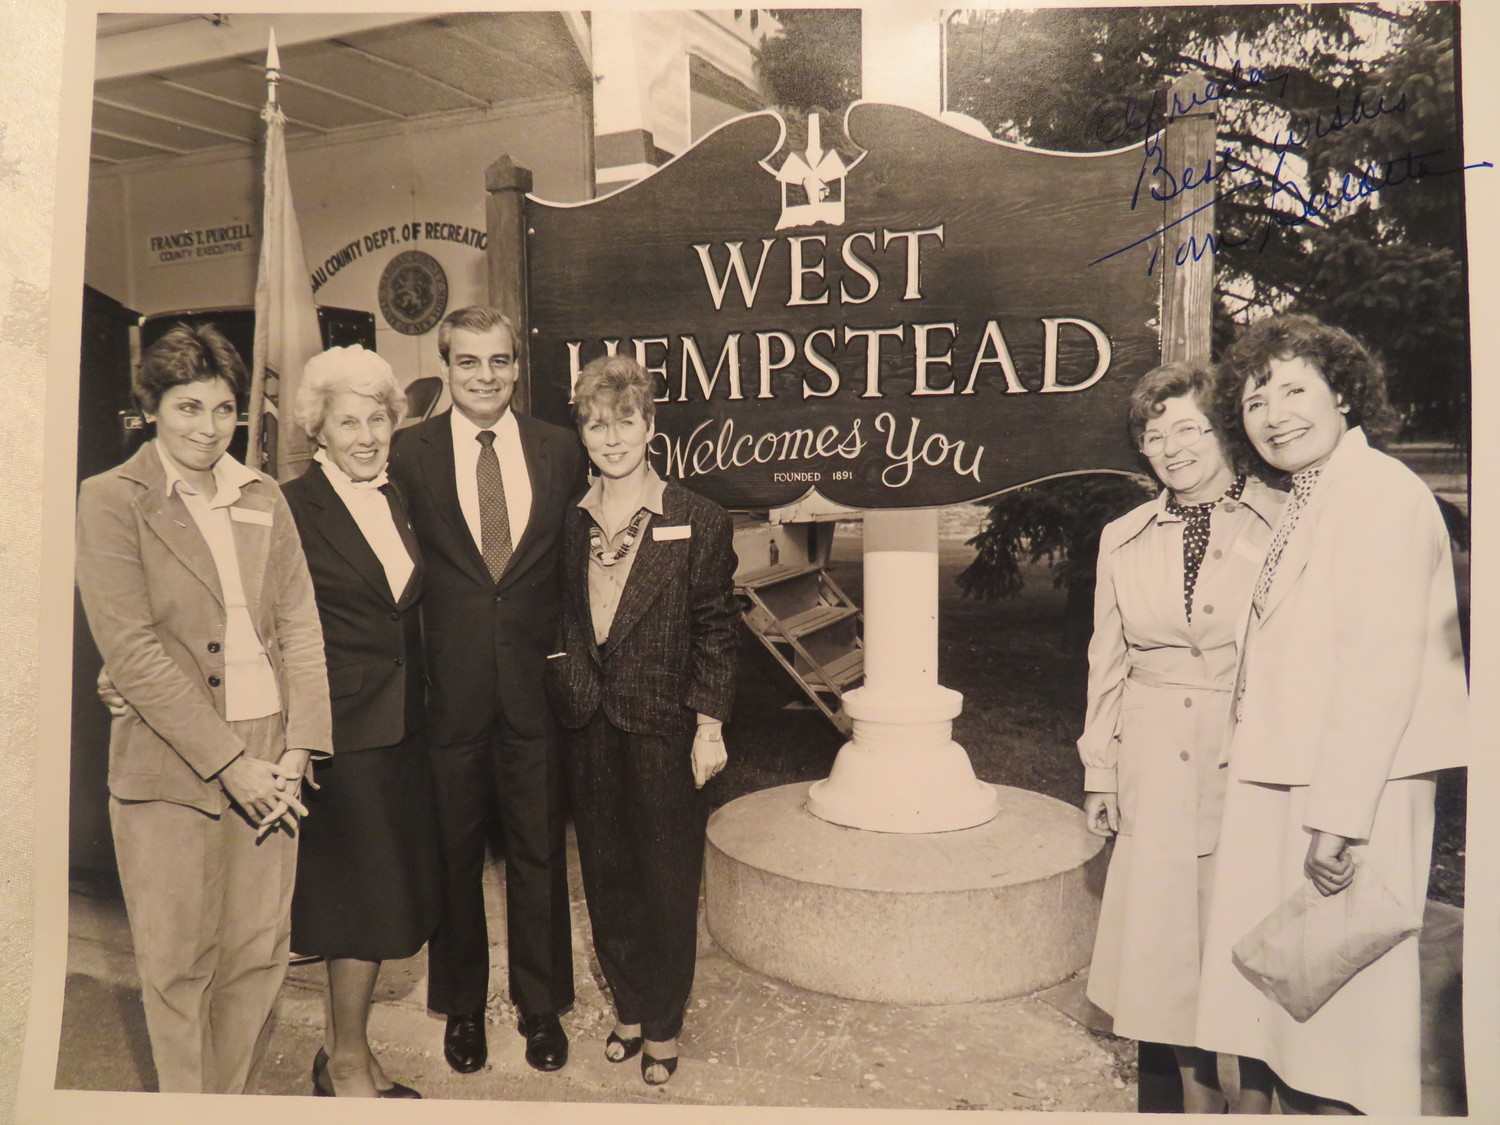 West Hempstead's newly installed welcome sign at Hall's Pond Park in 1985.